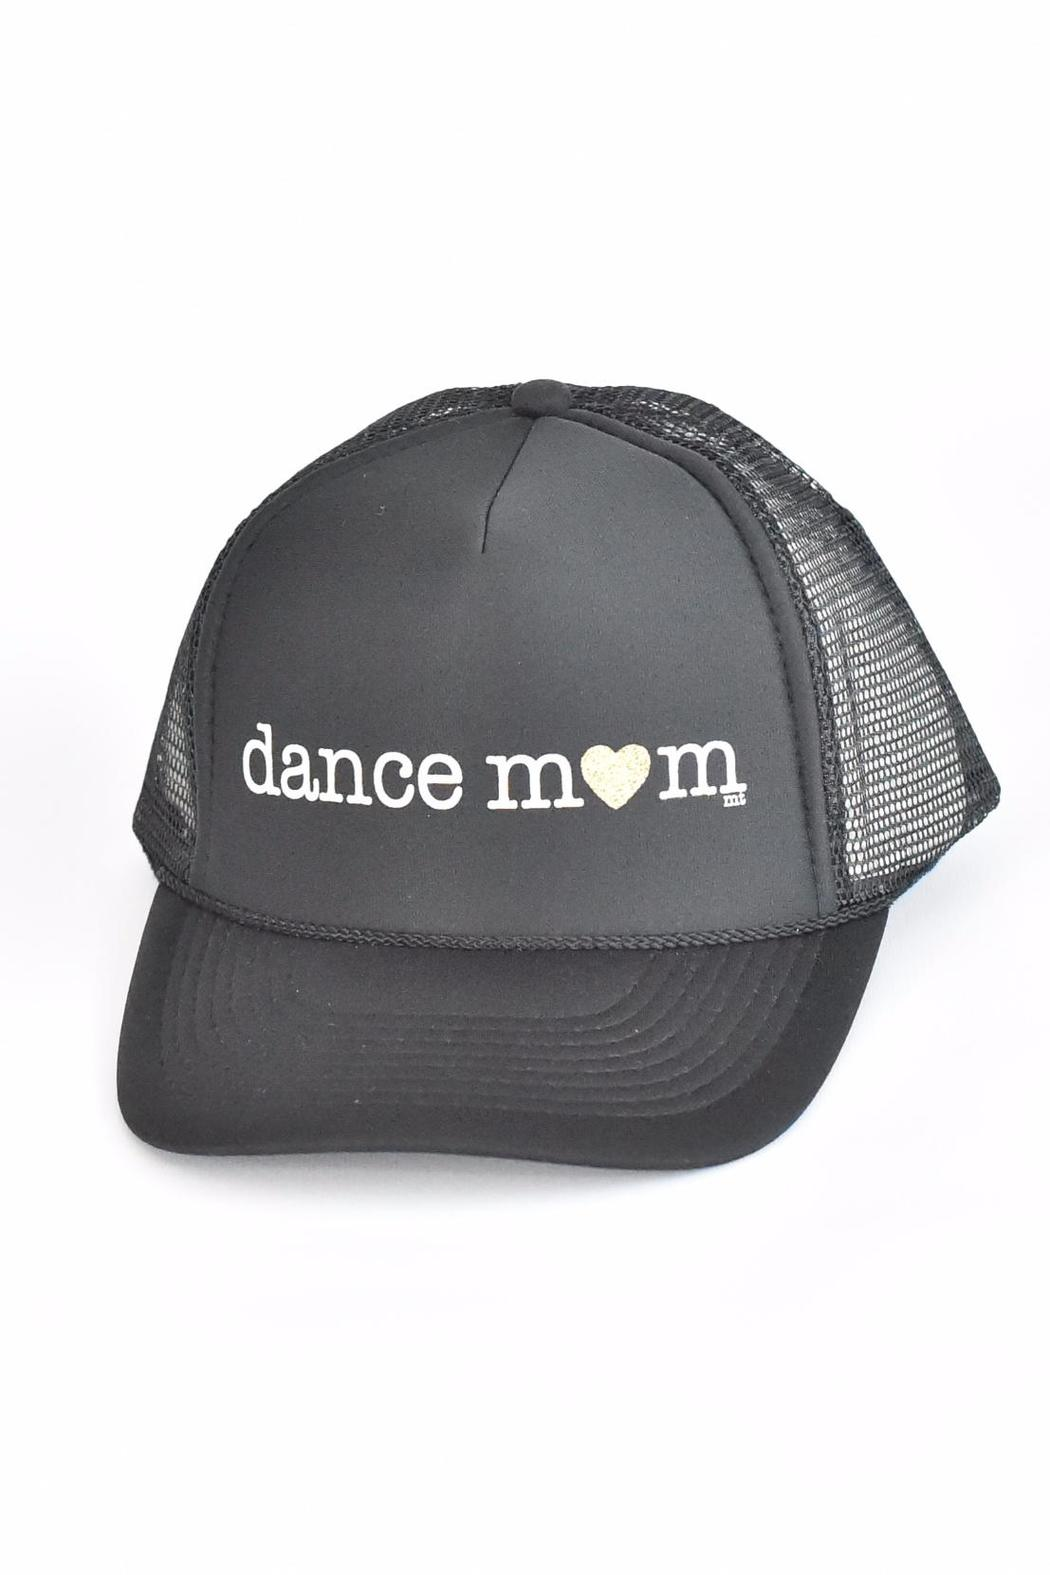 Mother Trucker Dance Mom Hat from California by Divinity Boutique ... d76aede608a